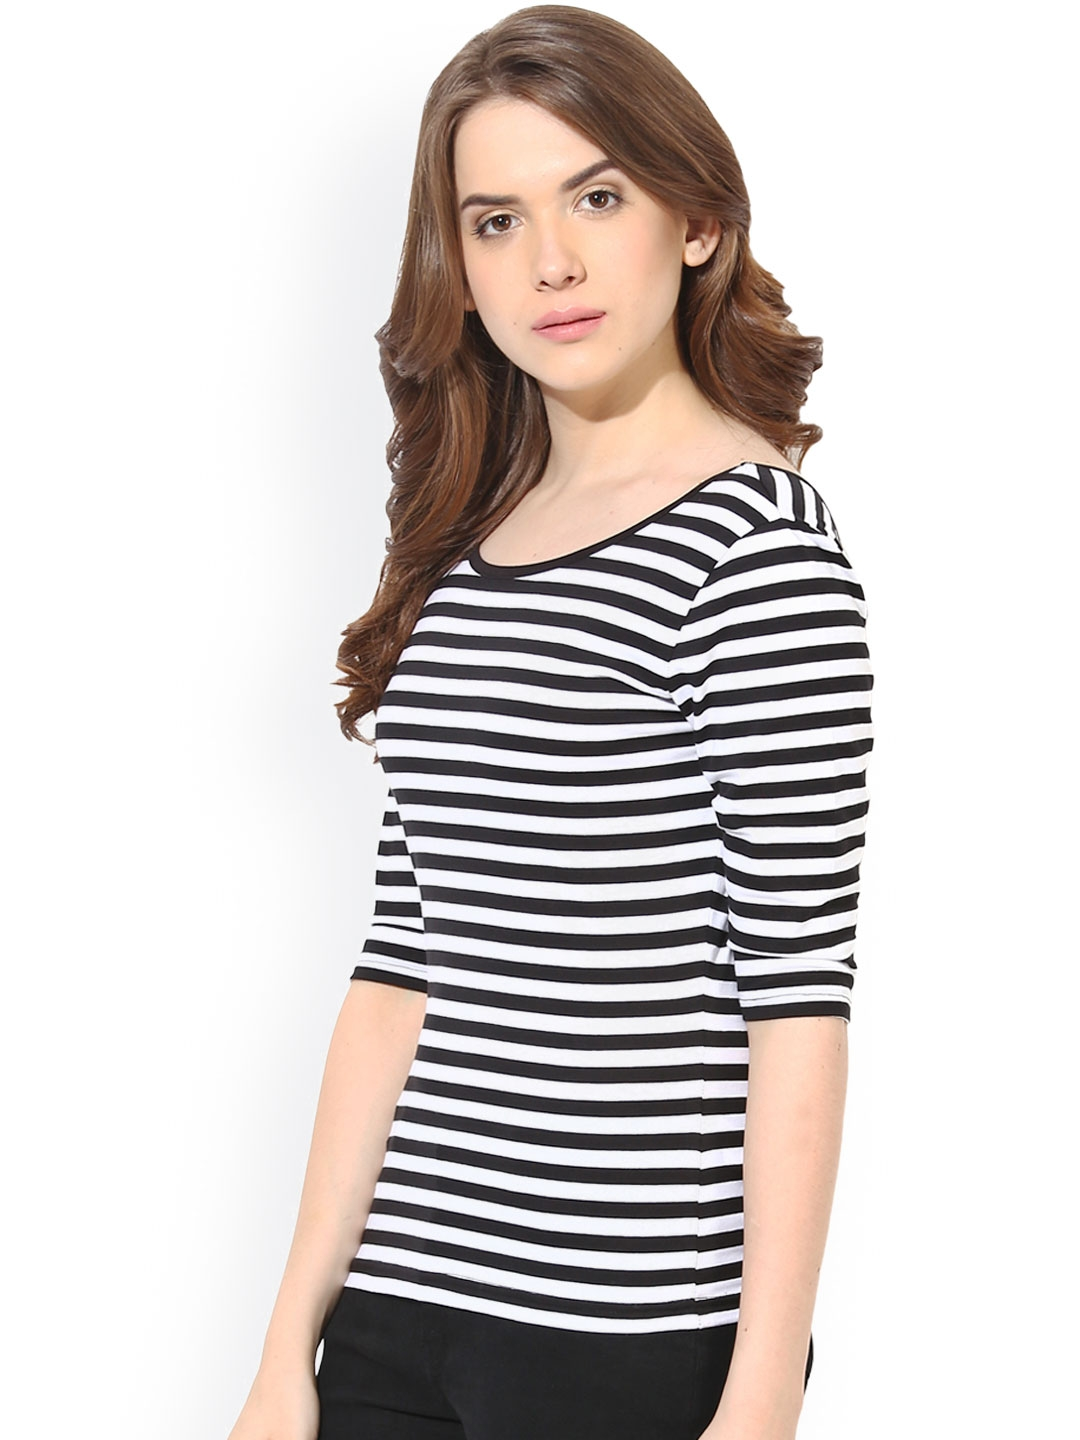 939638d90d8 Buy Harpa Black & White Striped Top - Tops for Women 940662   Myntra